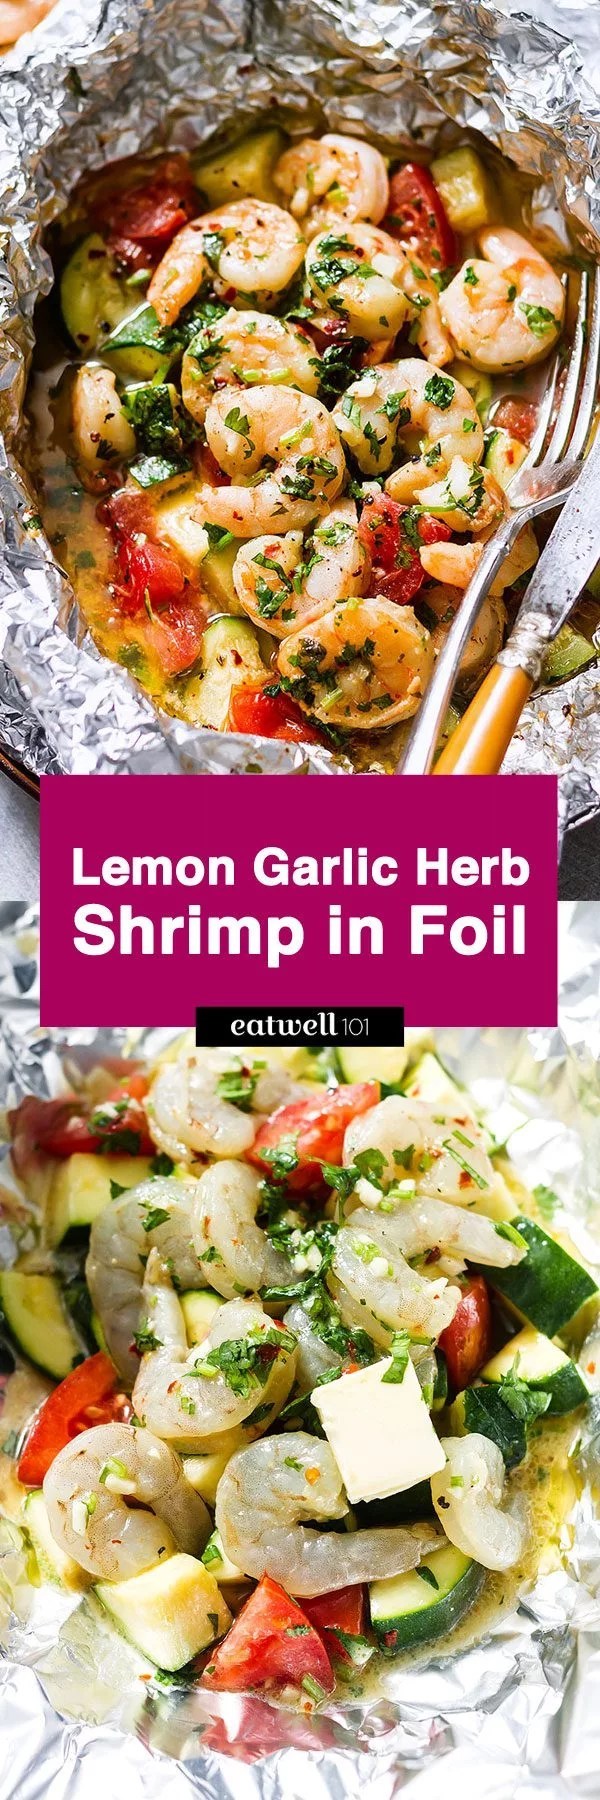 Shrimp Foil Packets With Lemon Garlic Herb Sauce Eatwell101